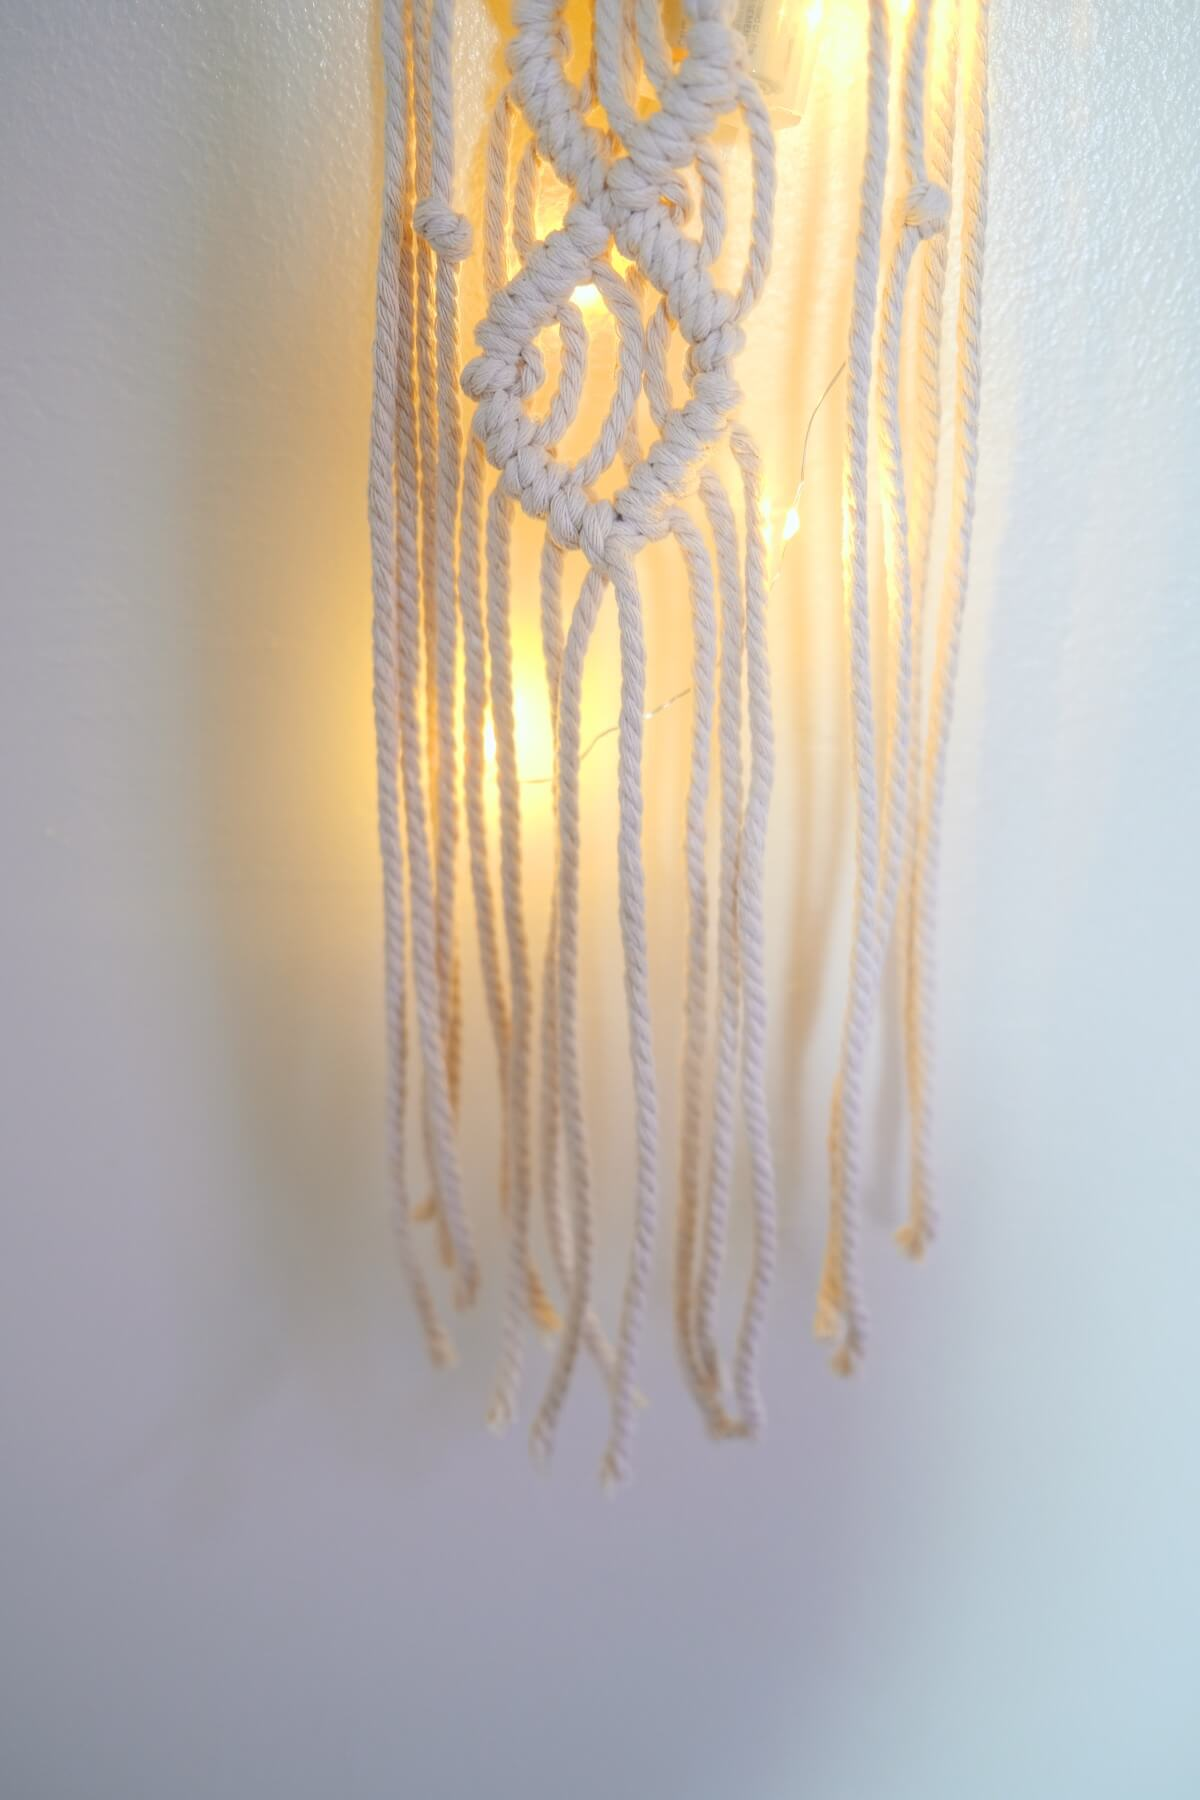 bottom of the macrame wall hanging finished